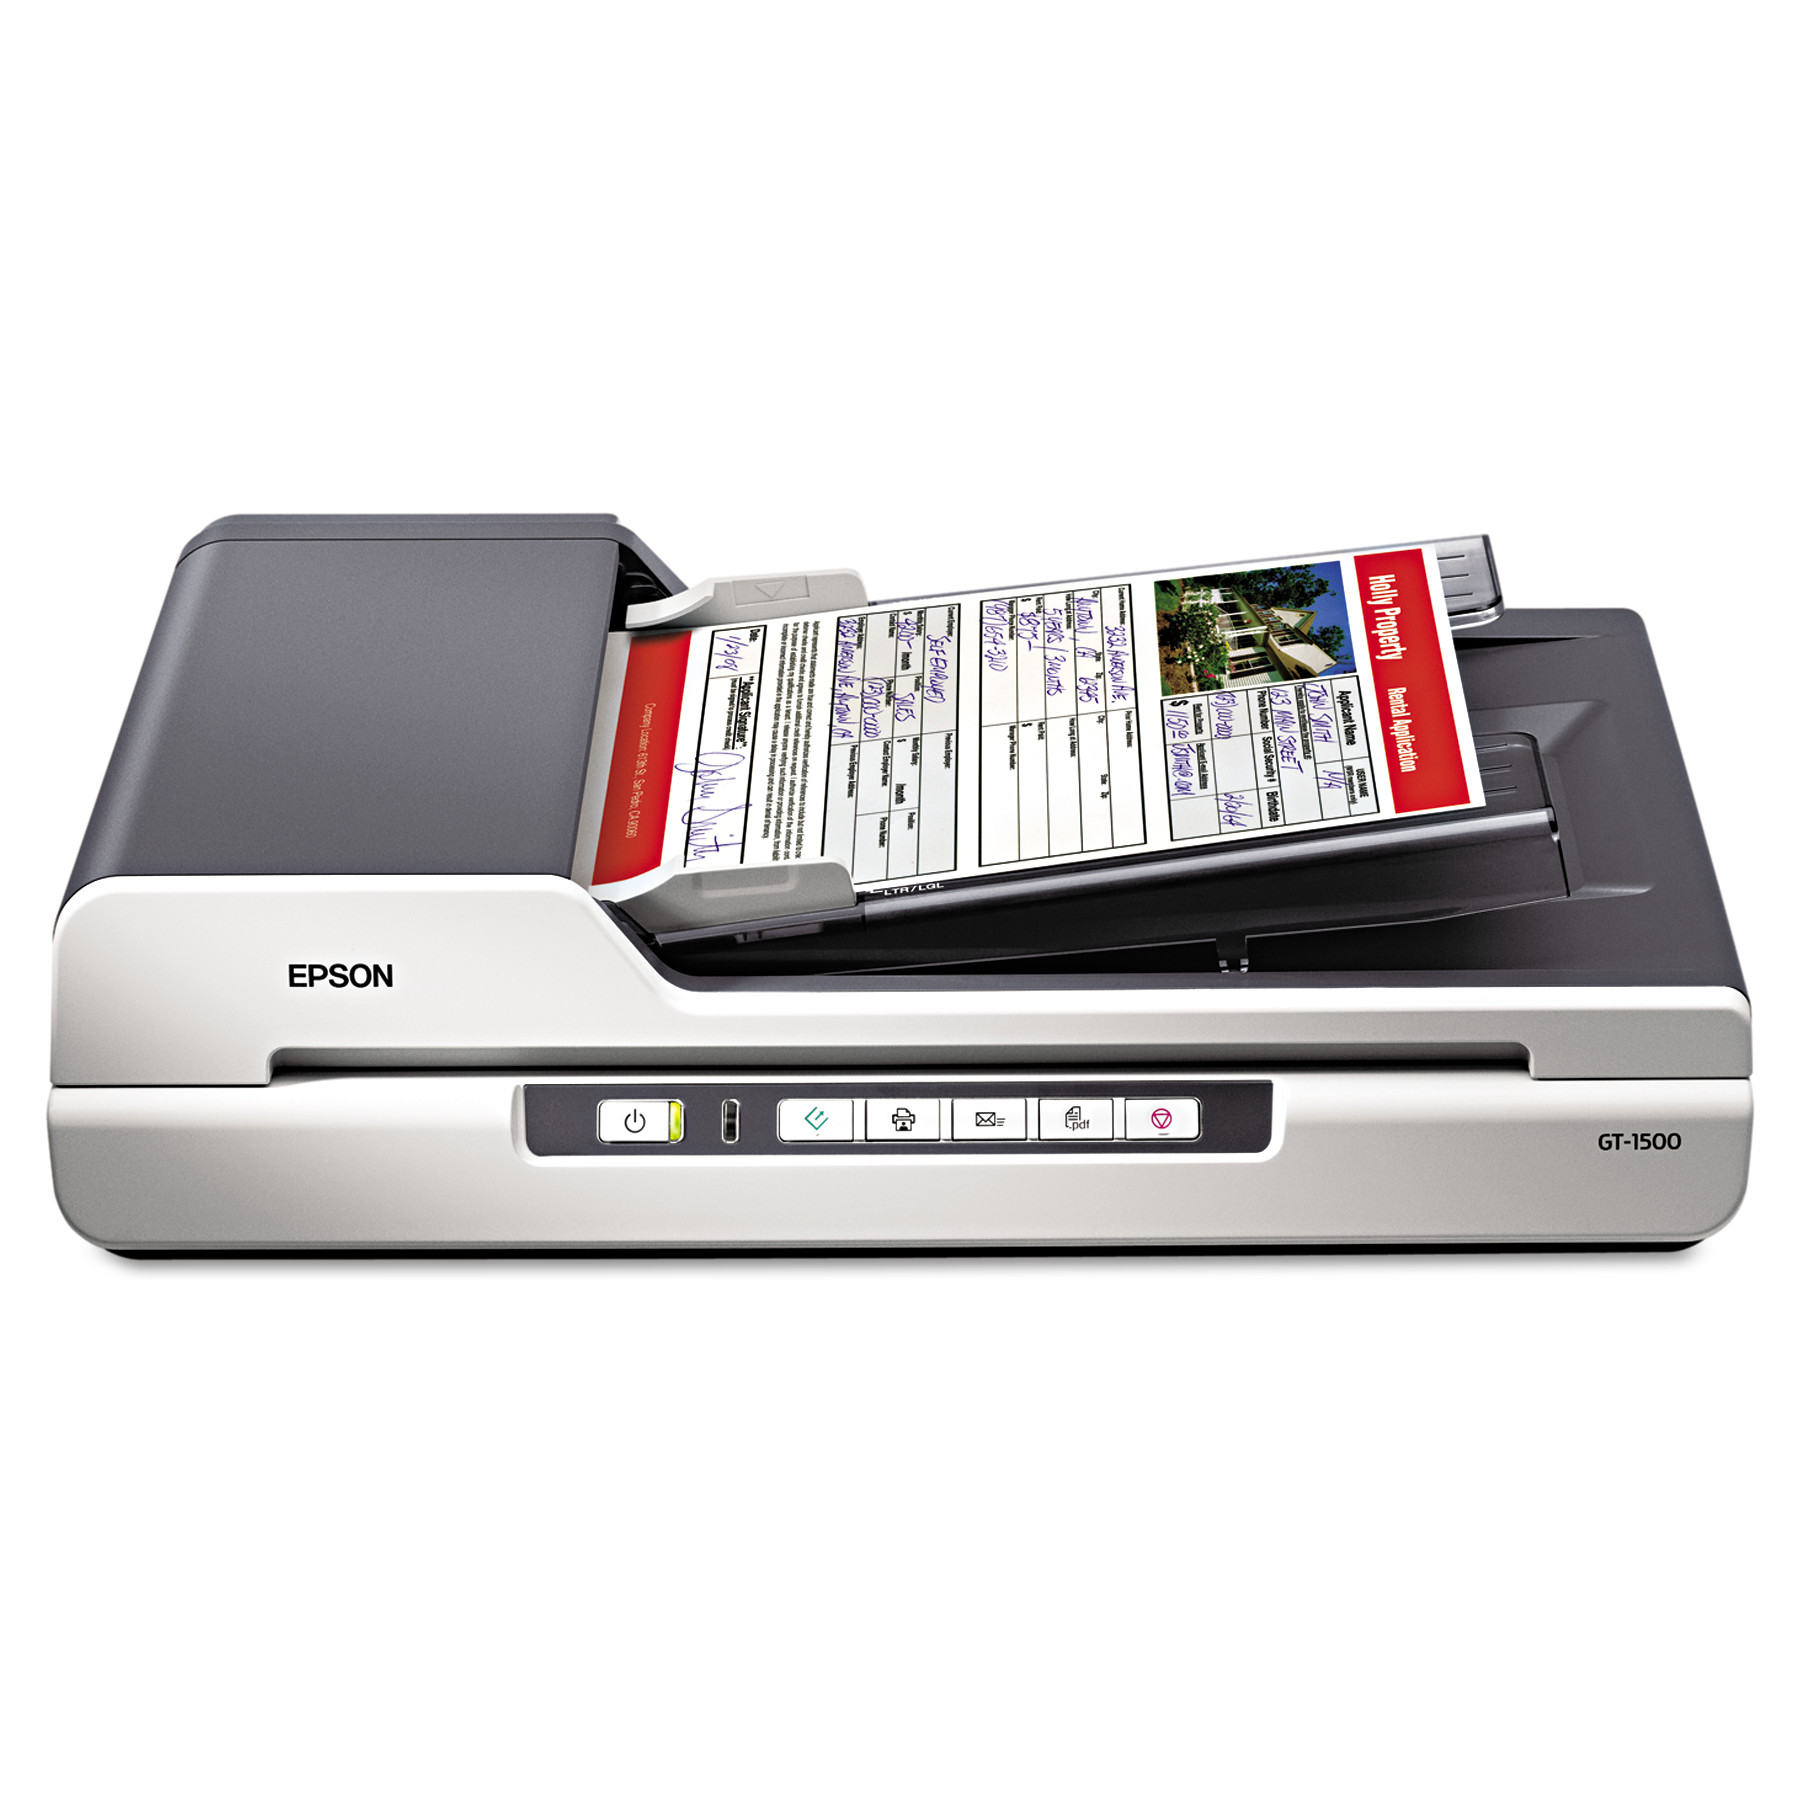 Epson GT-1500 Flatbed Color Image Scanner, 600dpi, Manual Paper Feeder